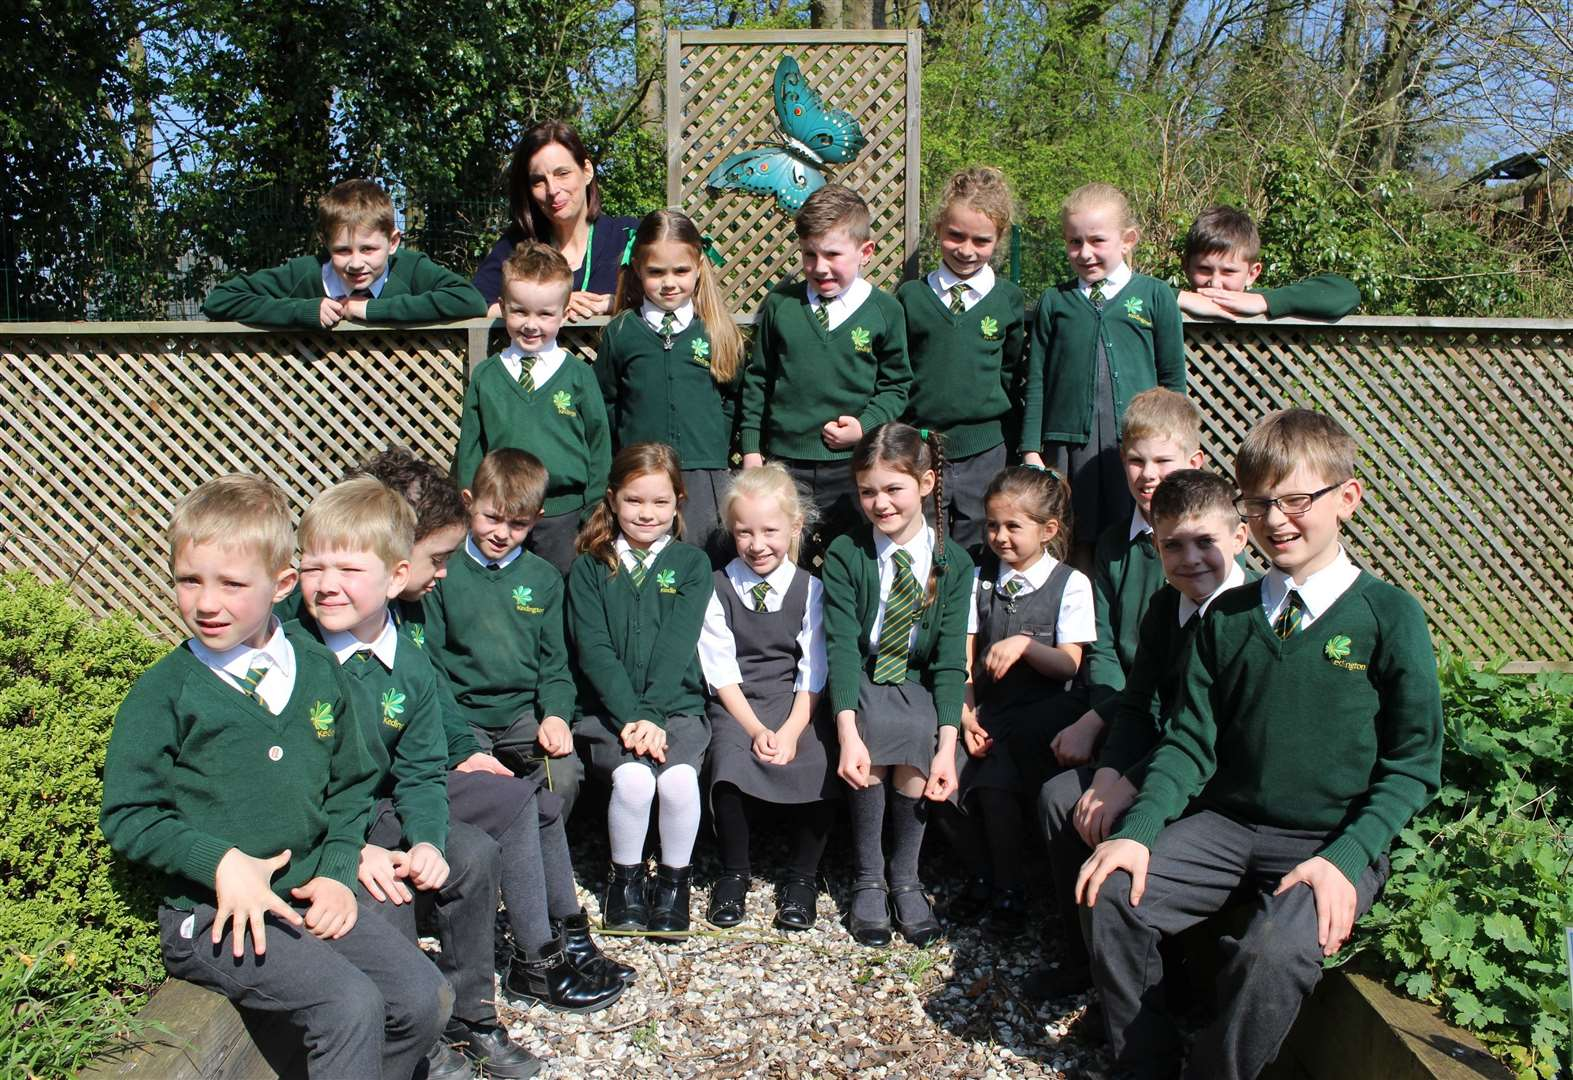 'Happy' classrooms help earn school a 'good' Ofsted